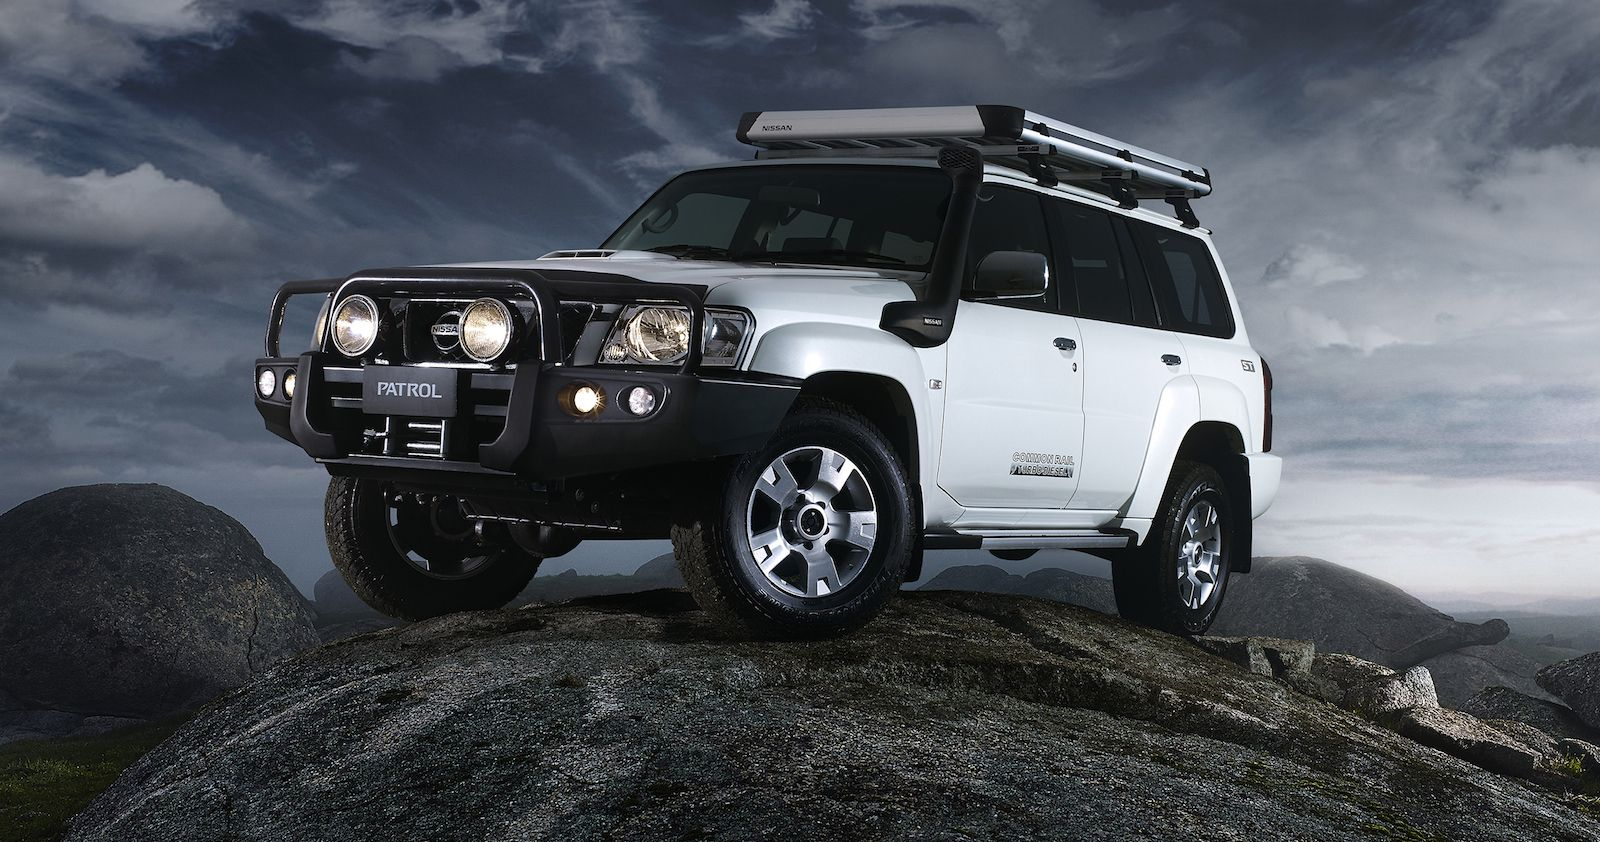 Nissan Patrol It S She Beautiful Con Imagenes Nissan Patrol Nissan Patrol Gr